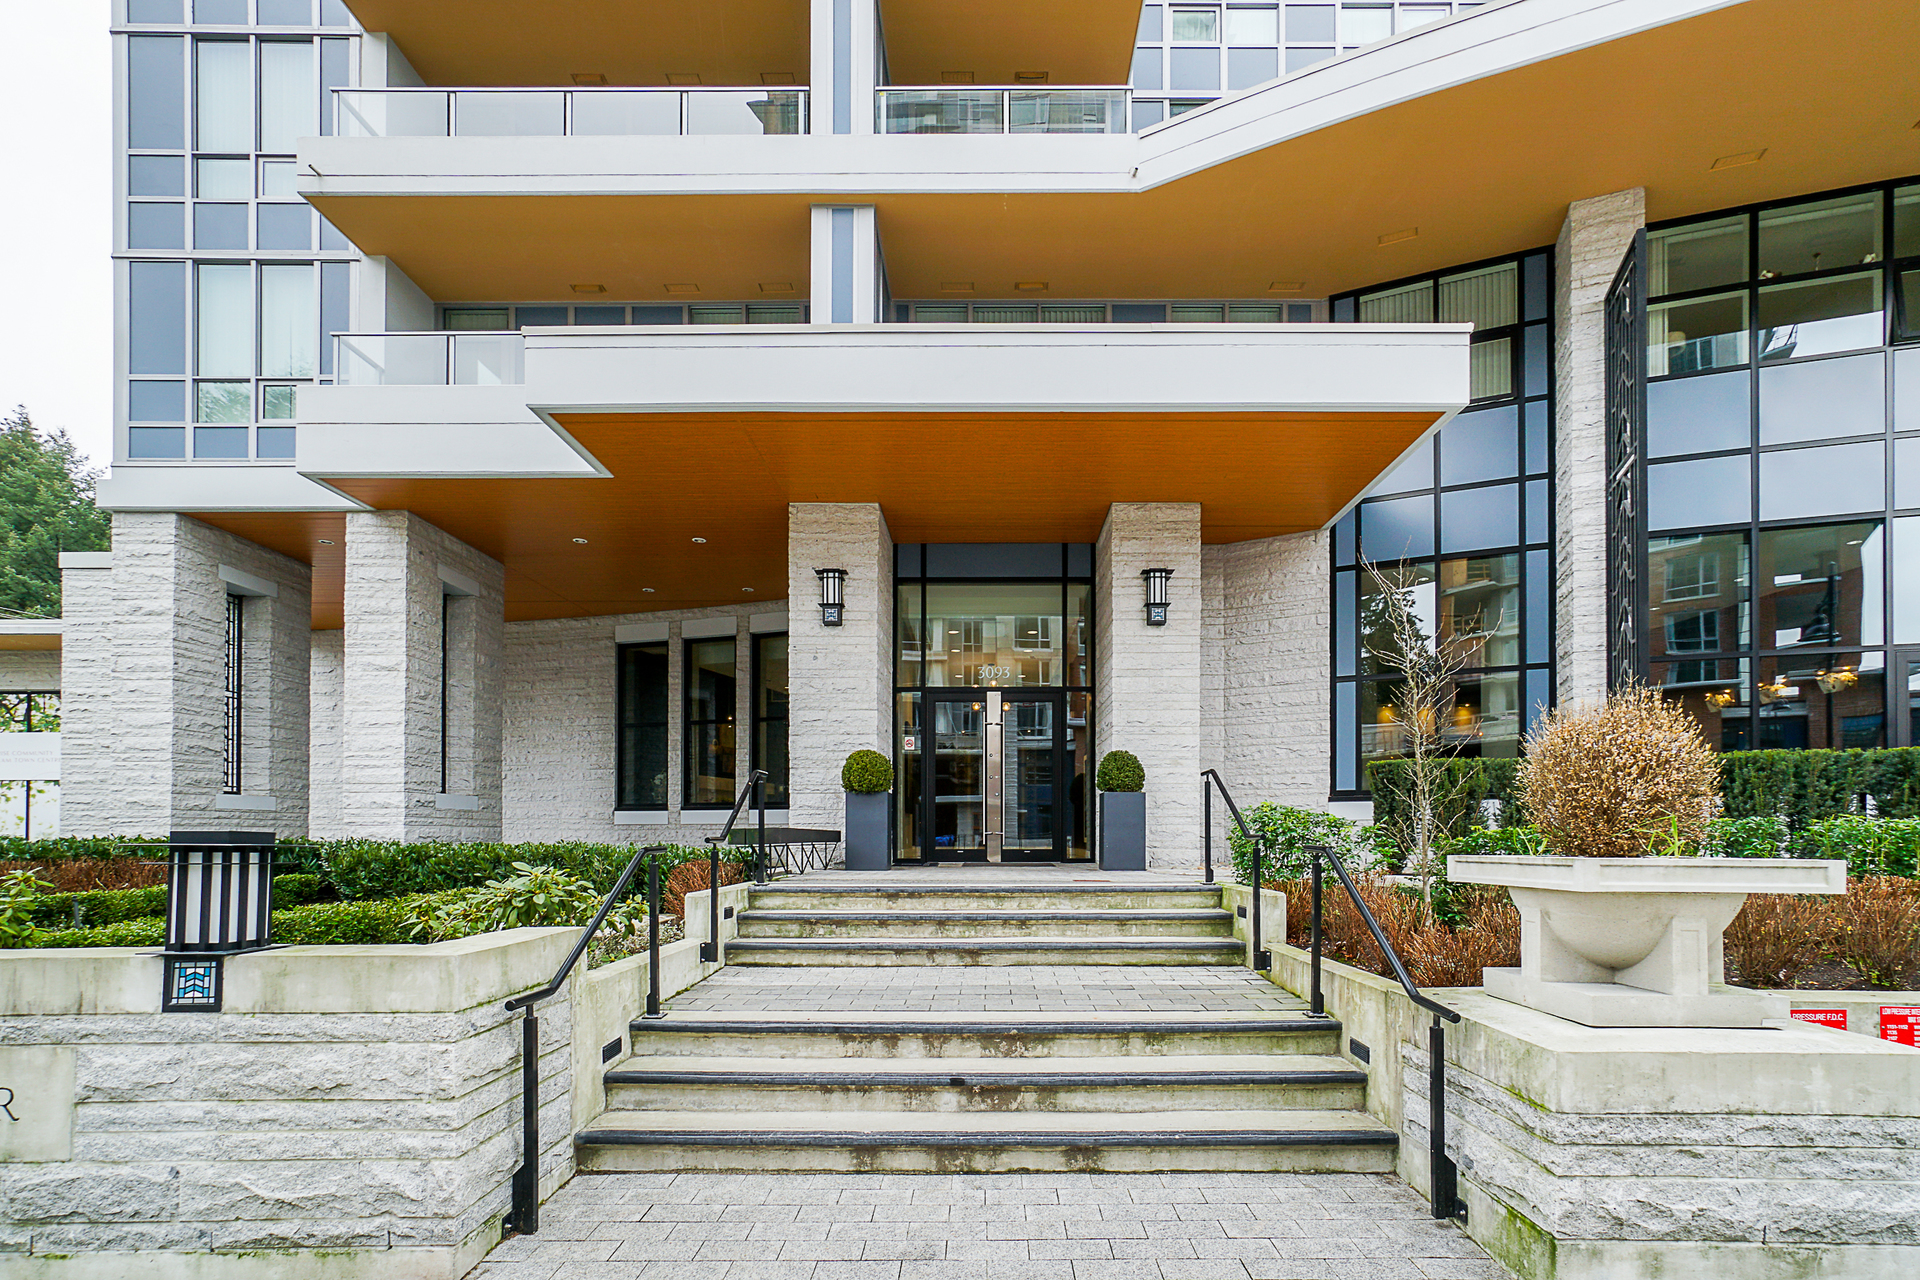 unit-2705-3093-windsor-gate-coquitlam-5 at 2705 - 3093 Windsor Gate, New Horizons, Coquitlam